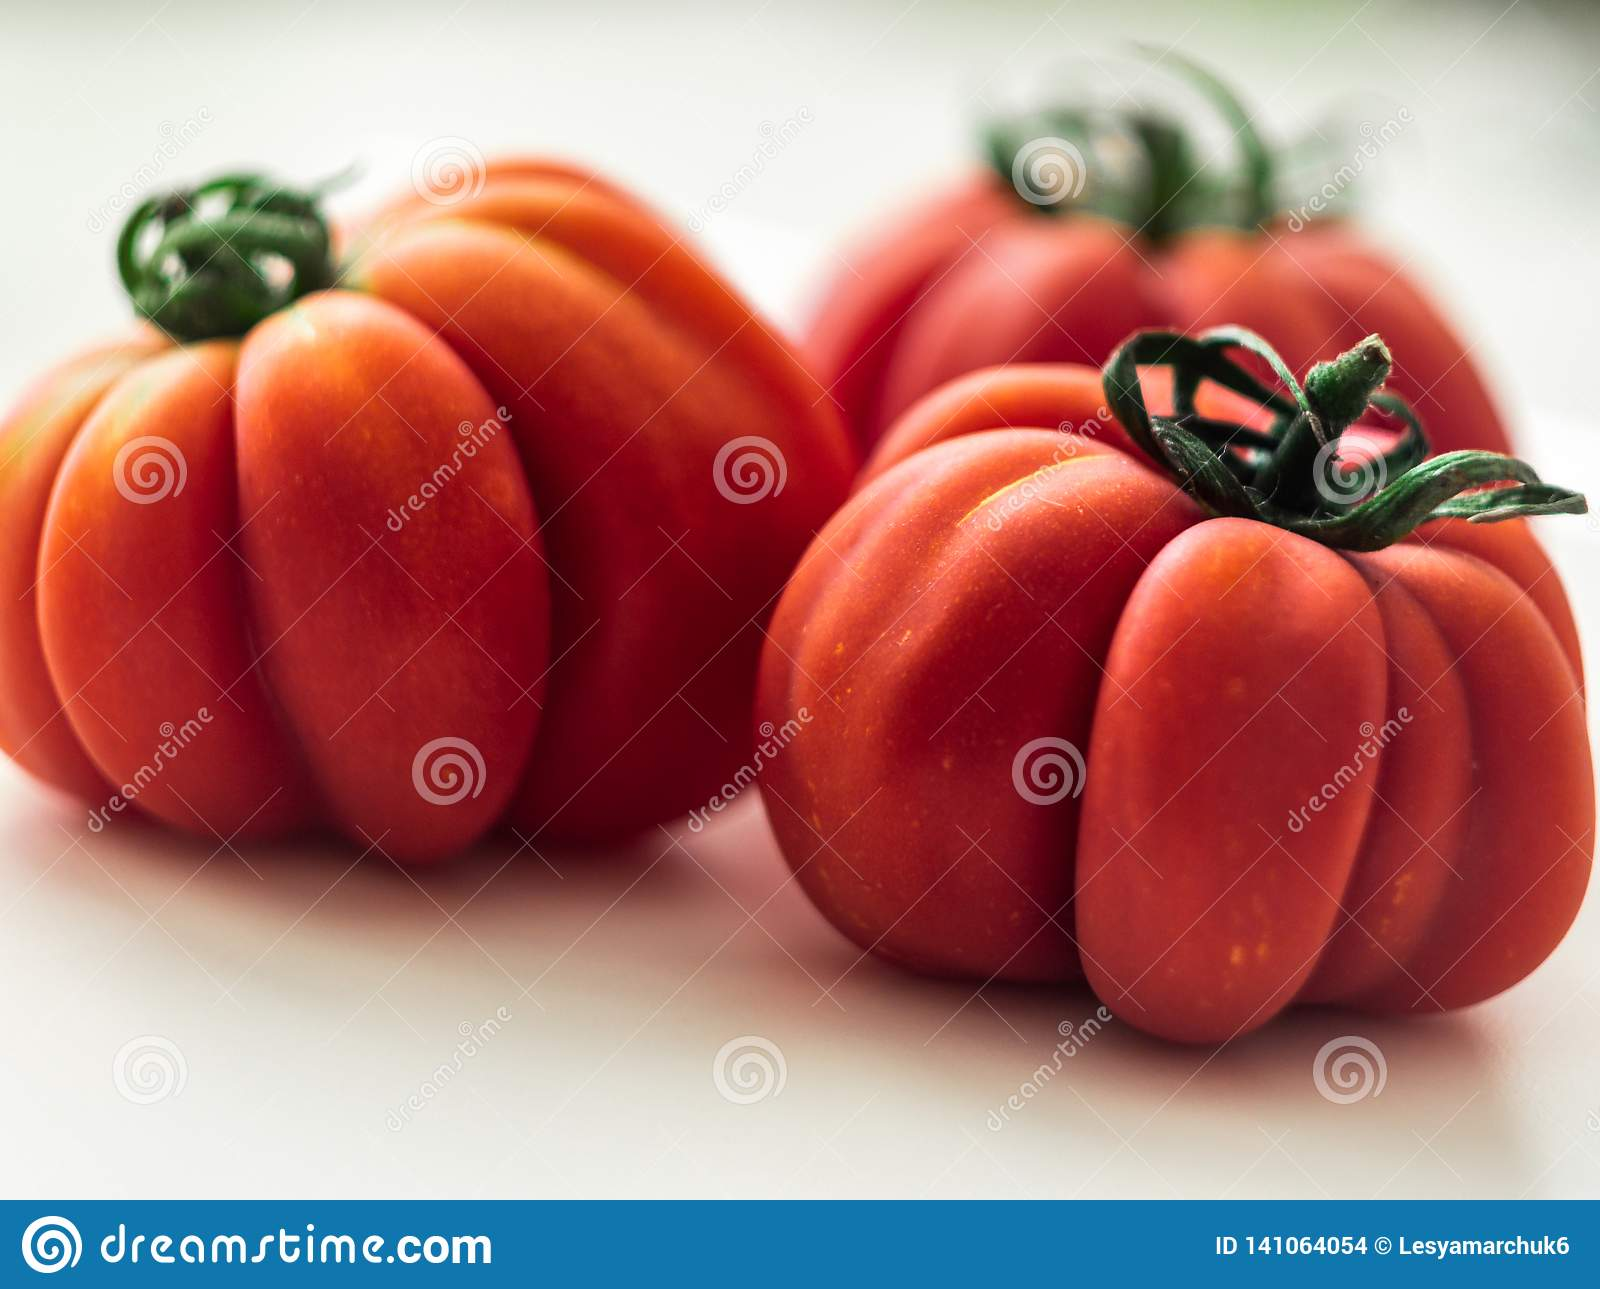 Three red beefsteak tomatoes.